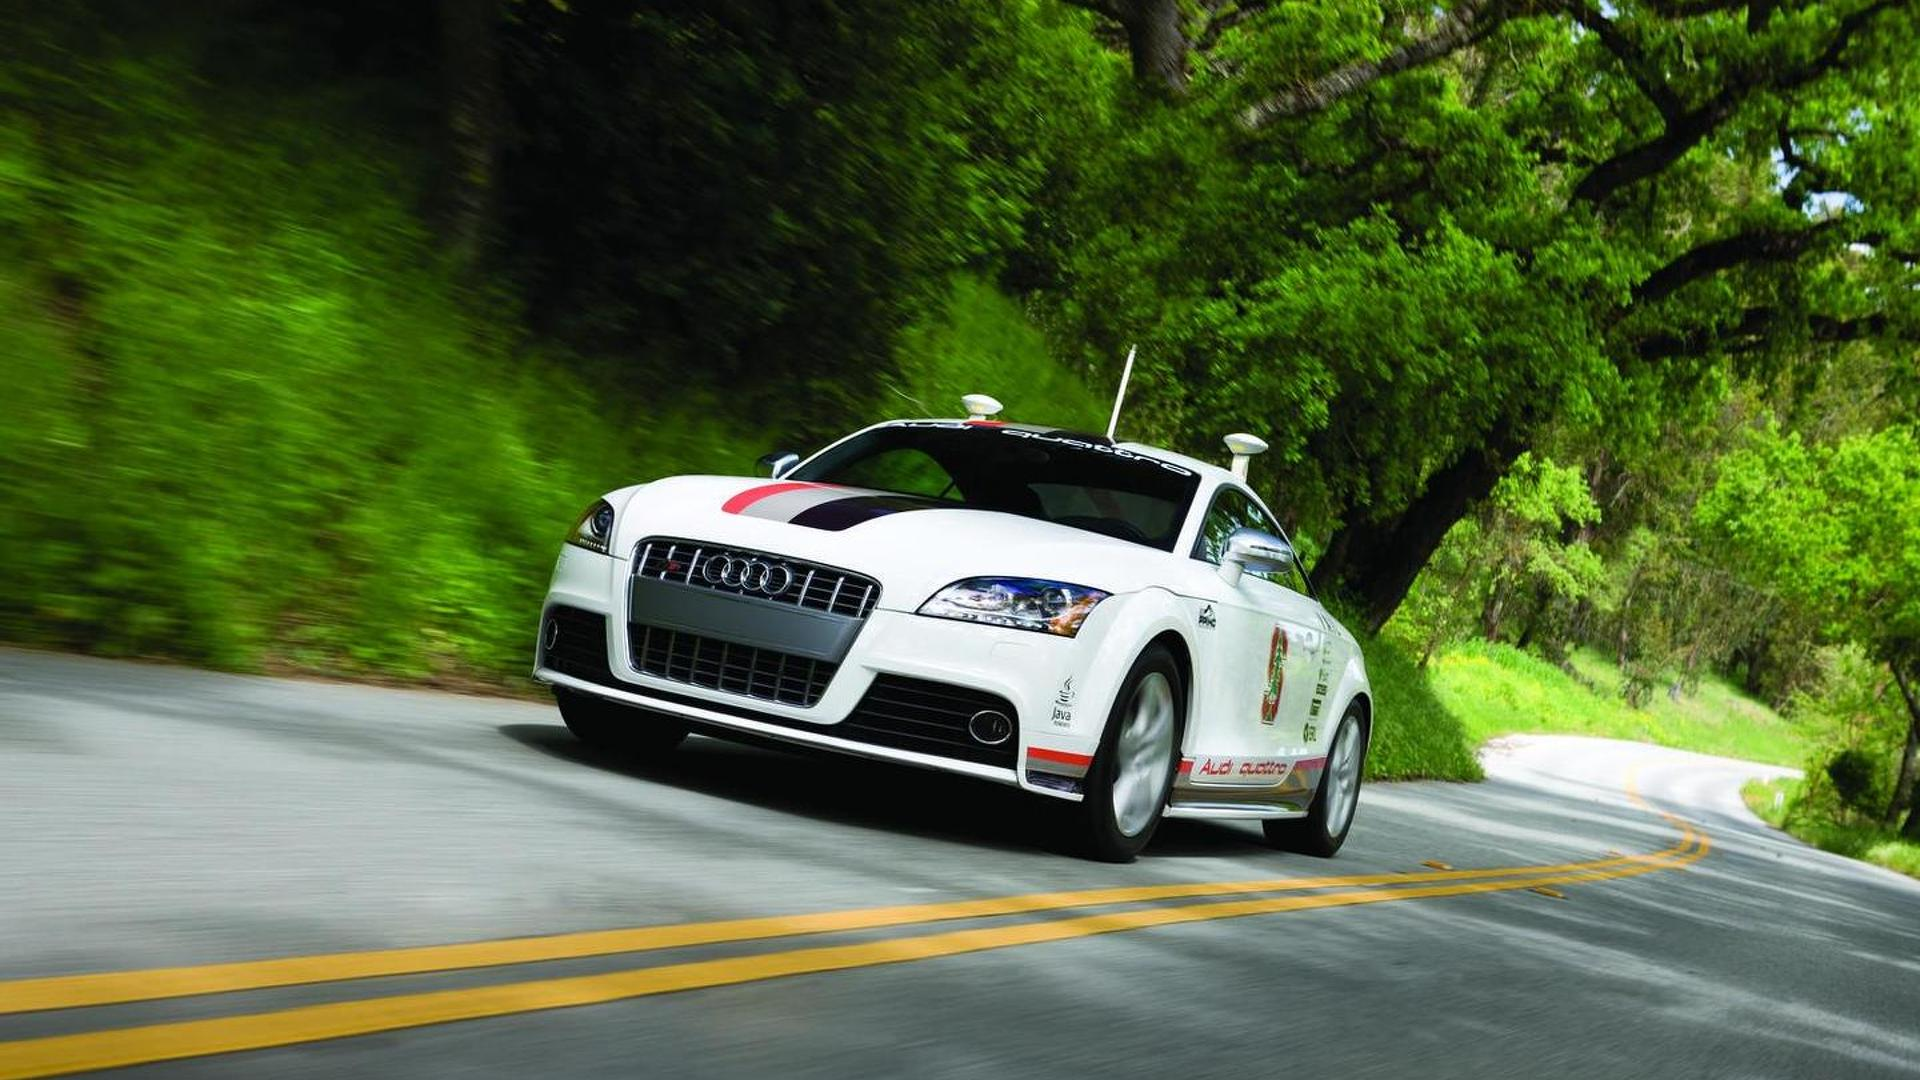 Audi going to SEMA show for the first time